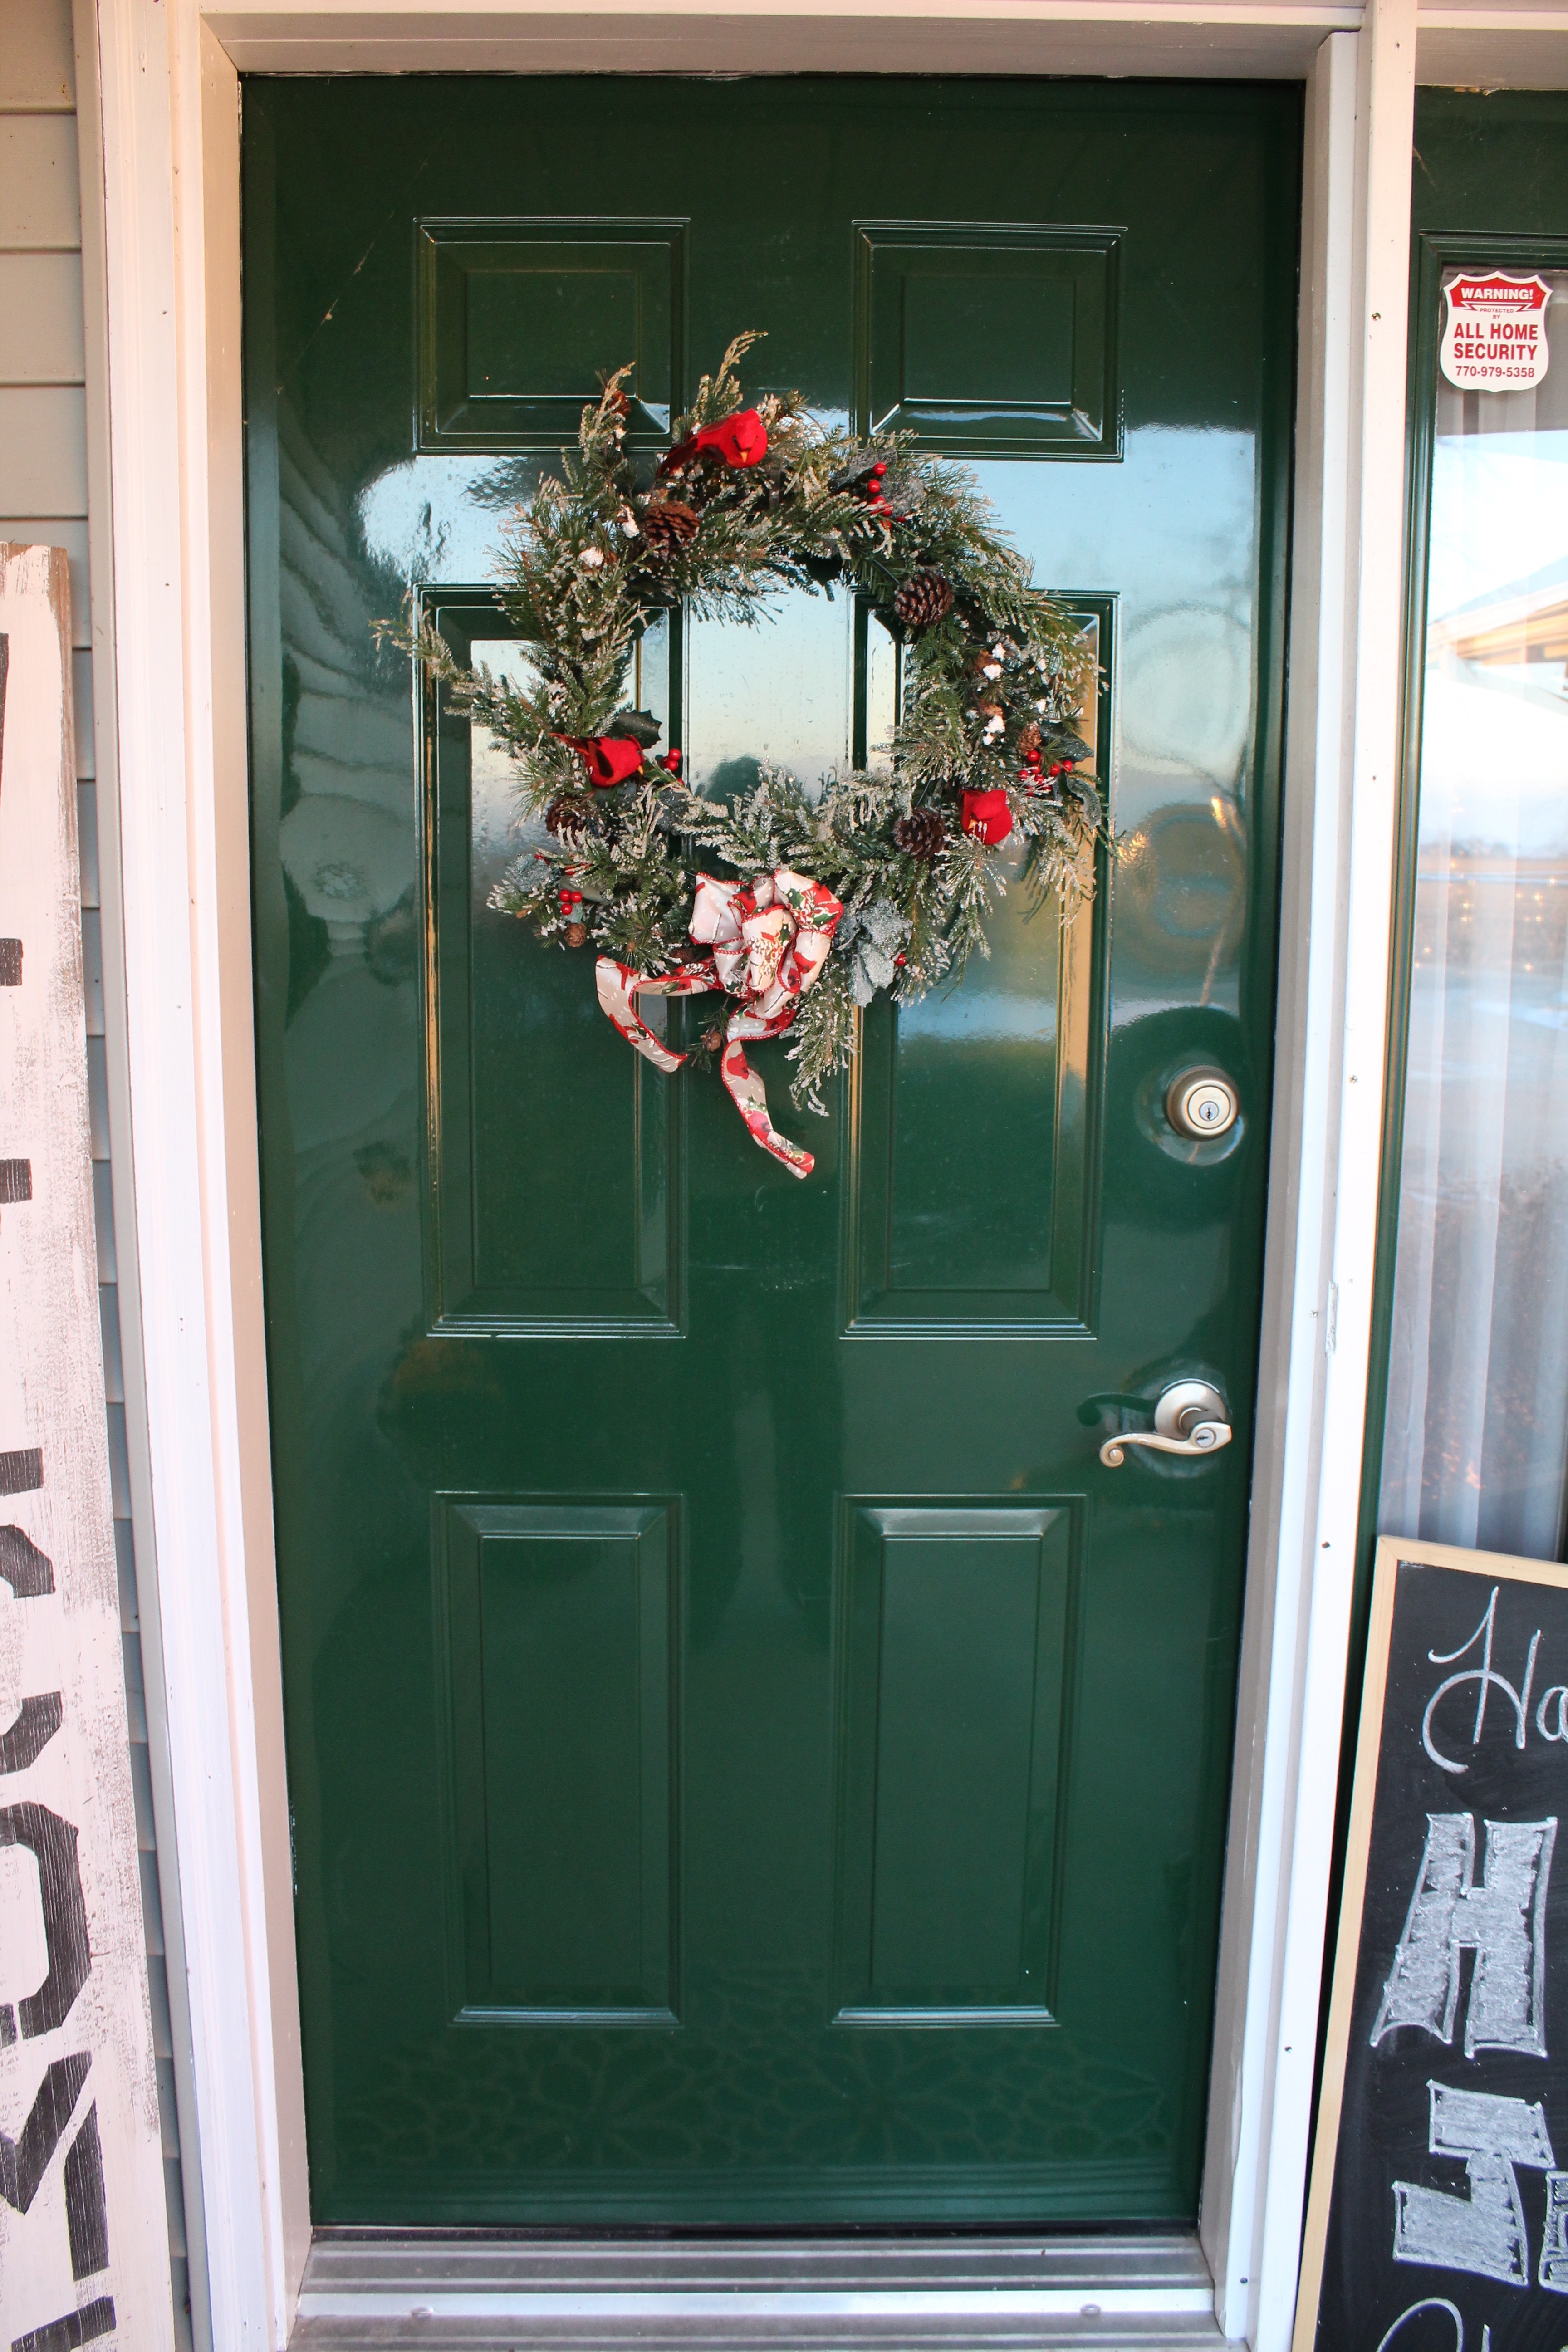 christmas front door clipart. This Past Winter, I Entered A Contest Introduced By DecoArt.com. Had To Submit Photo Of Our Front Door, And They Would Choose Select Number Entries Christmas Door Clipart